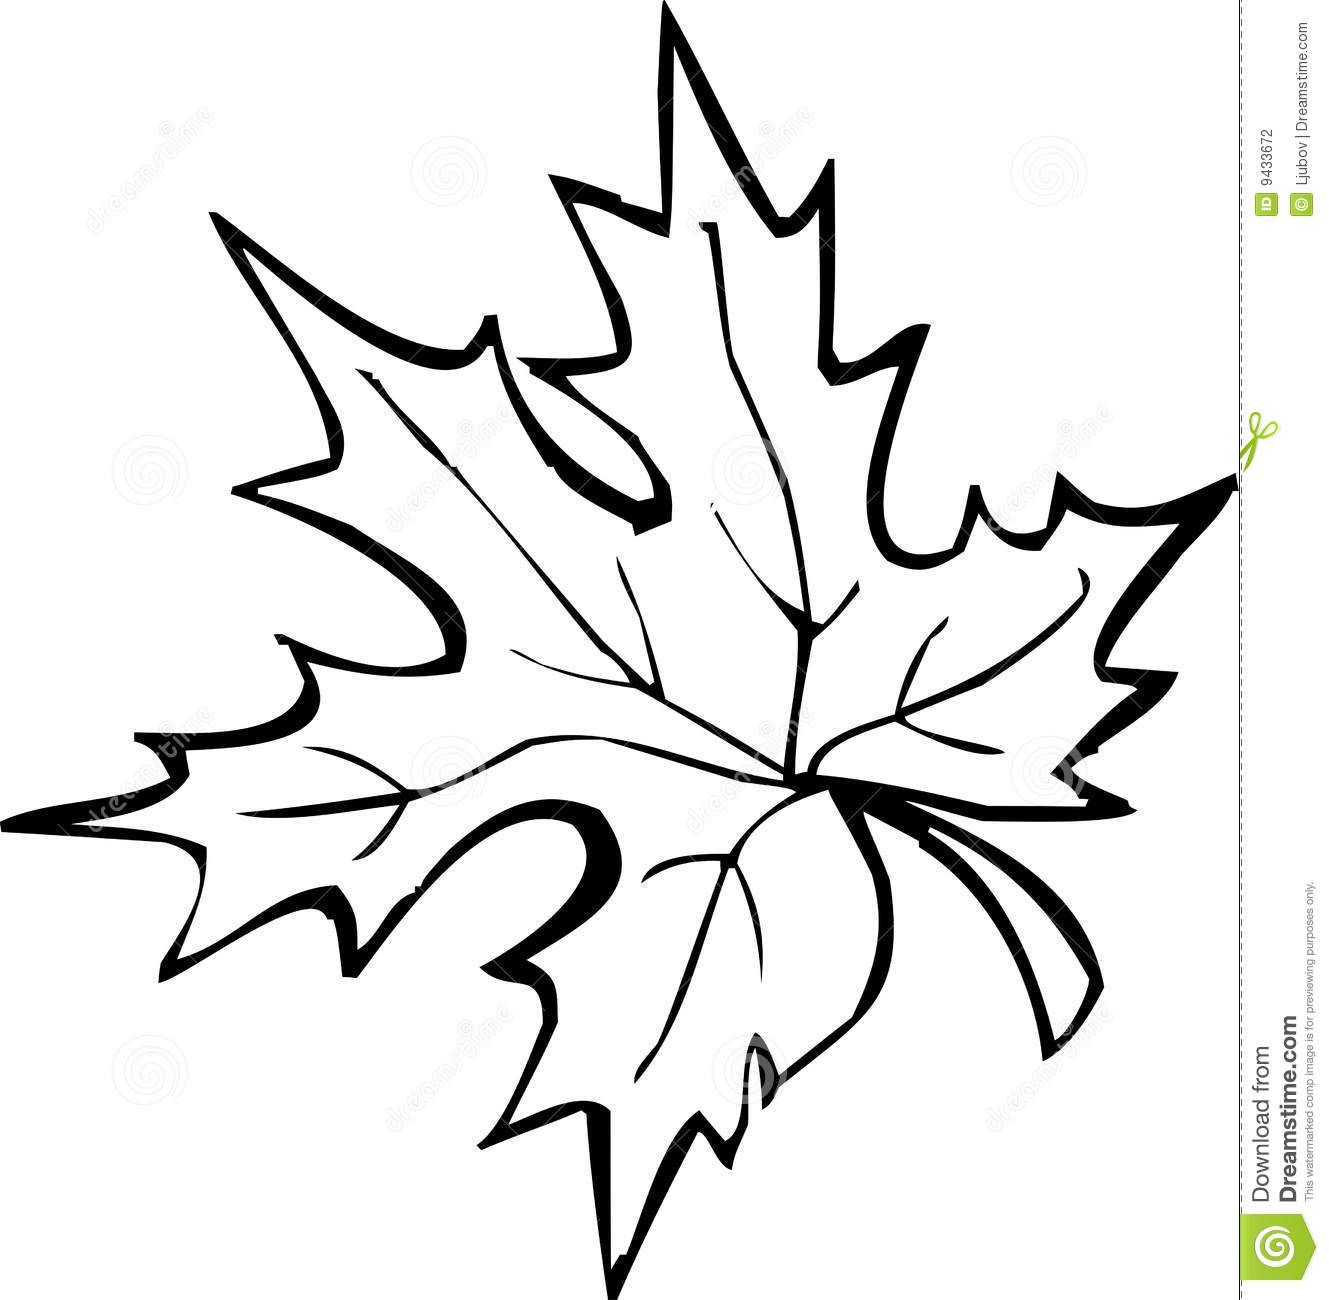 Maple leaf clipart black and white 3 » Clipart Station.